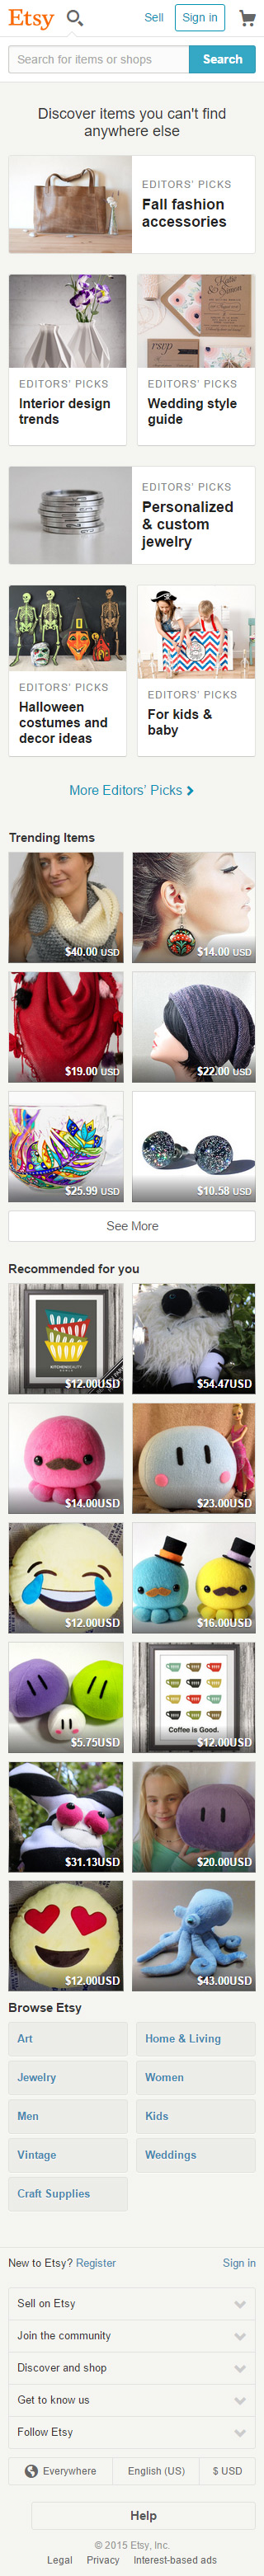 etsy mobile friendly example